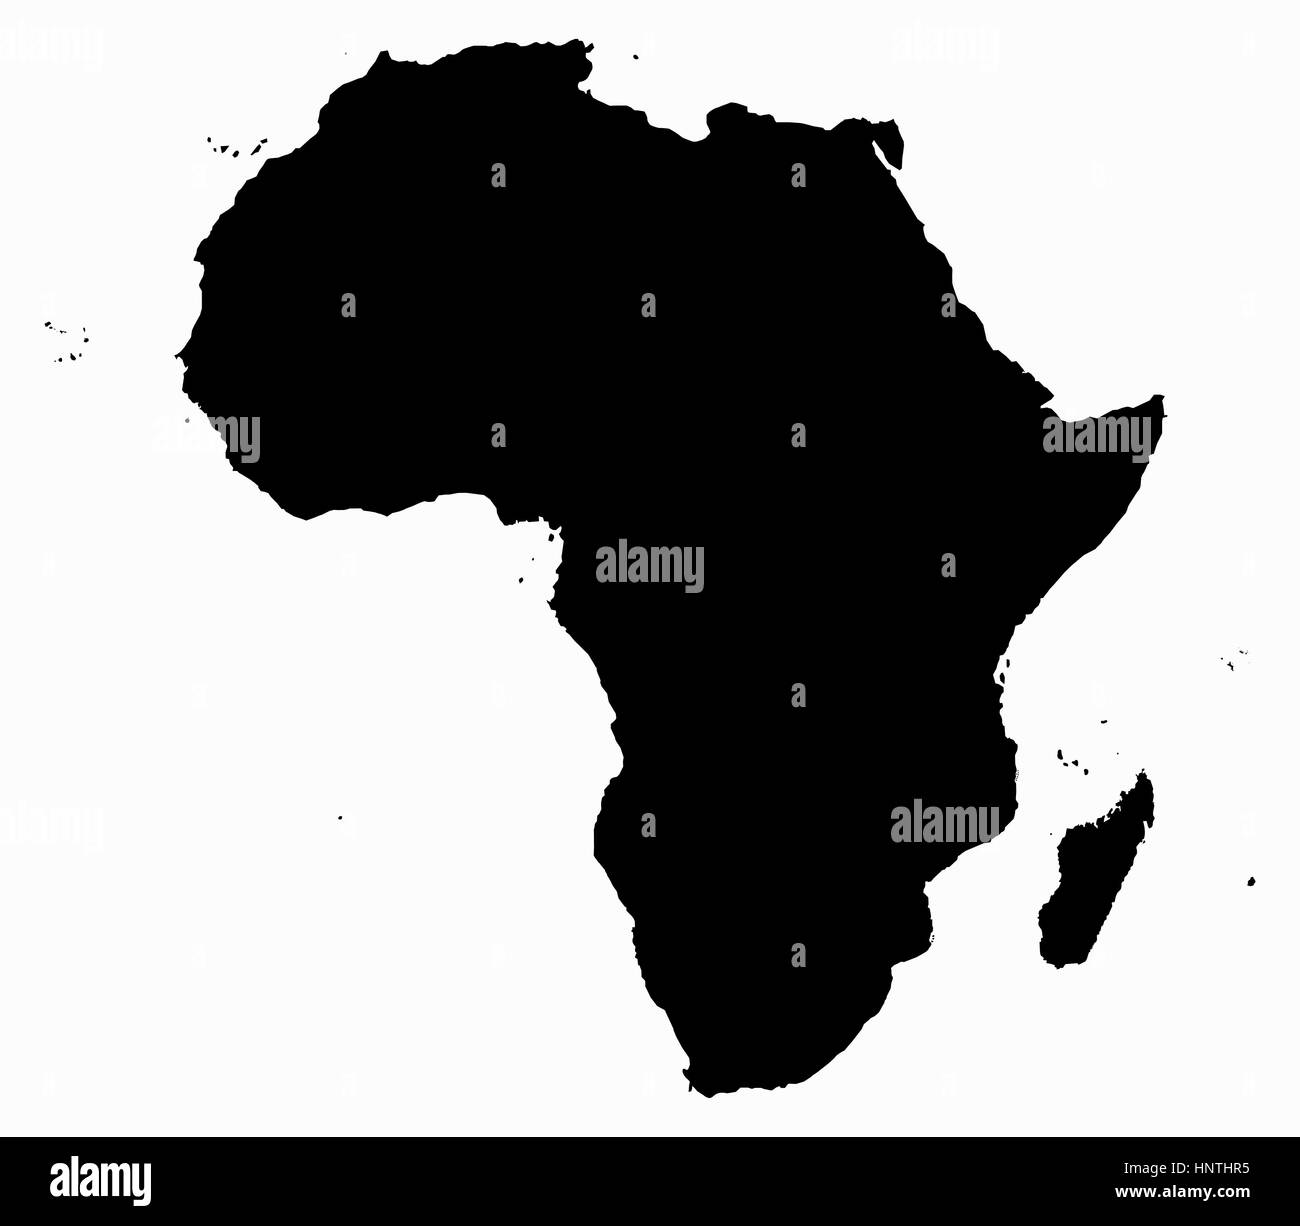 Good An Africa Map Silhouette Isolated On A White Background   Stock Image